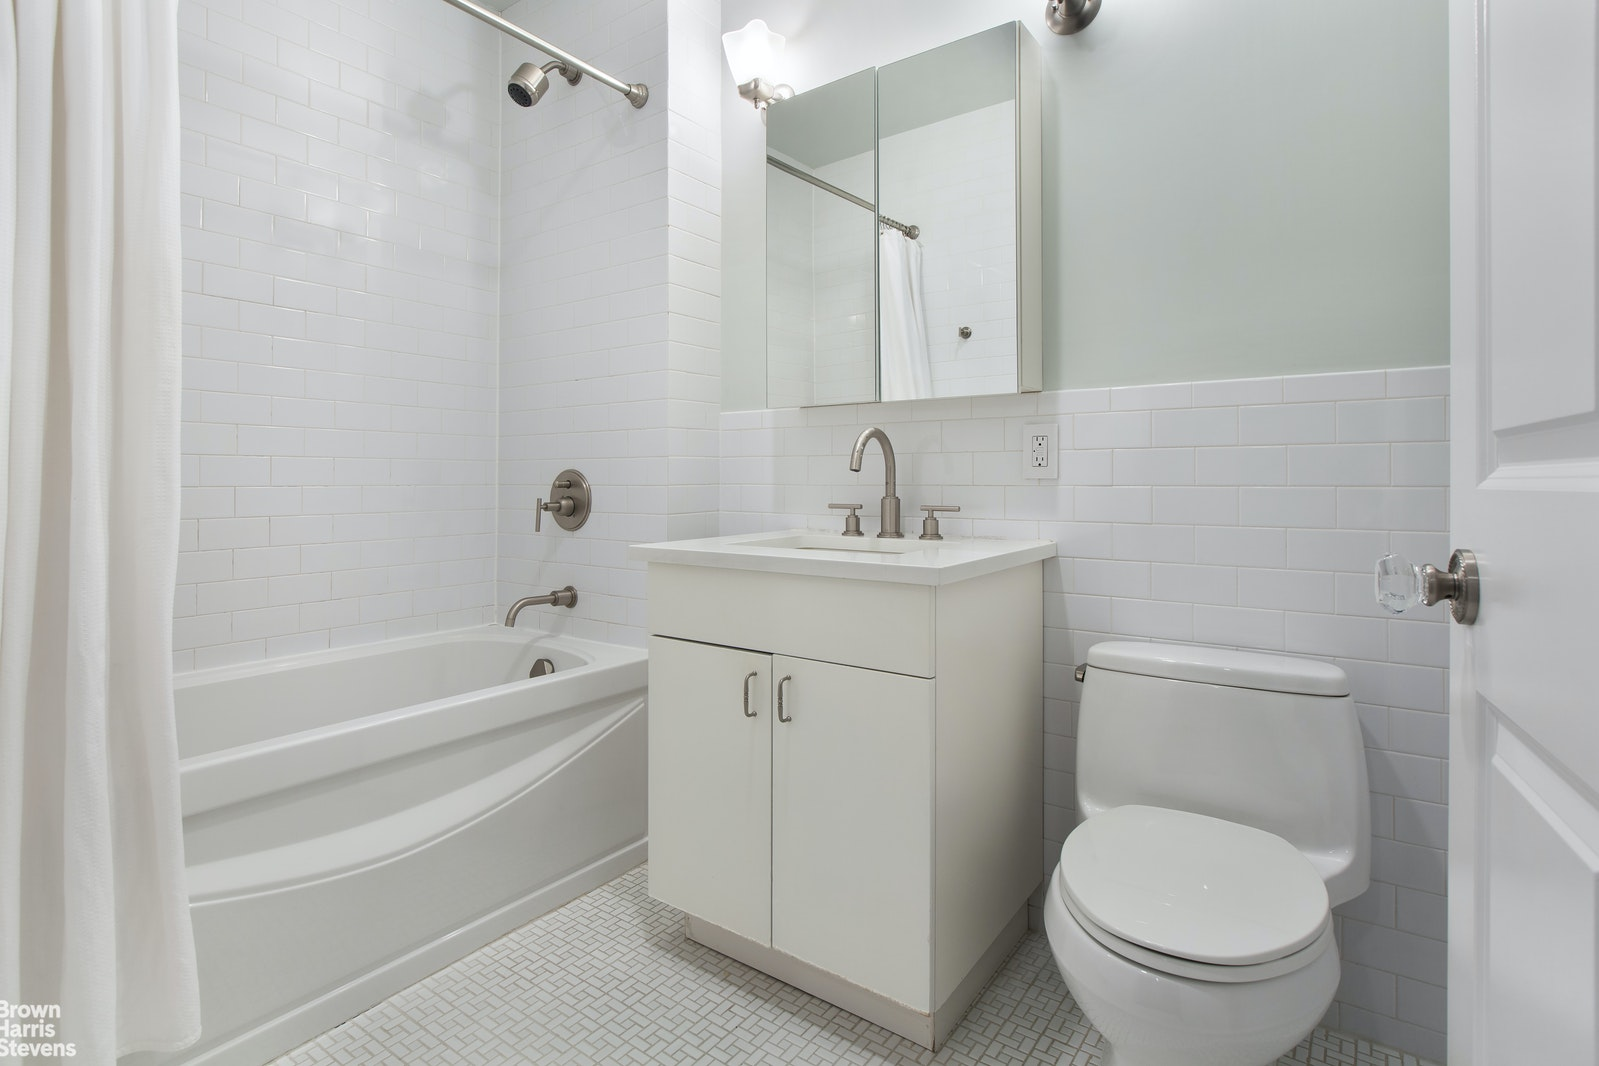 238 West 108th Street Garden, Upper West Side, NYC, 10025, $2,595,000, Property For Sale, Halstead Real Estate, Photo 9